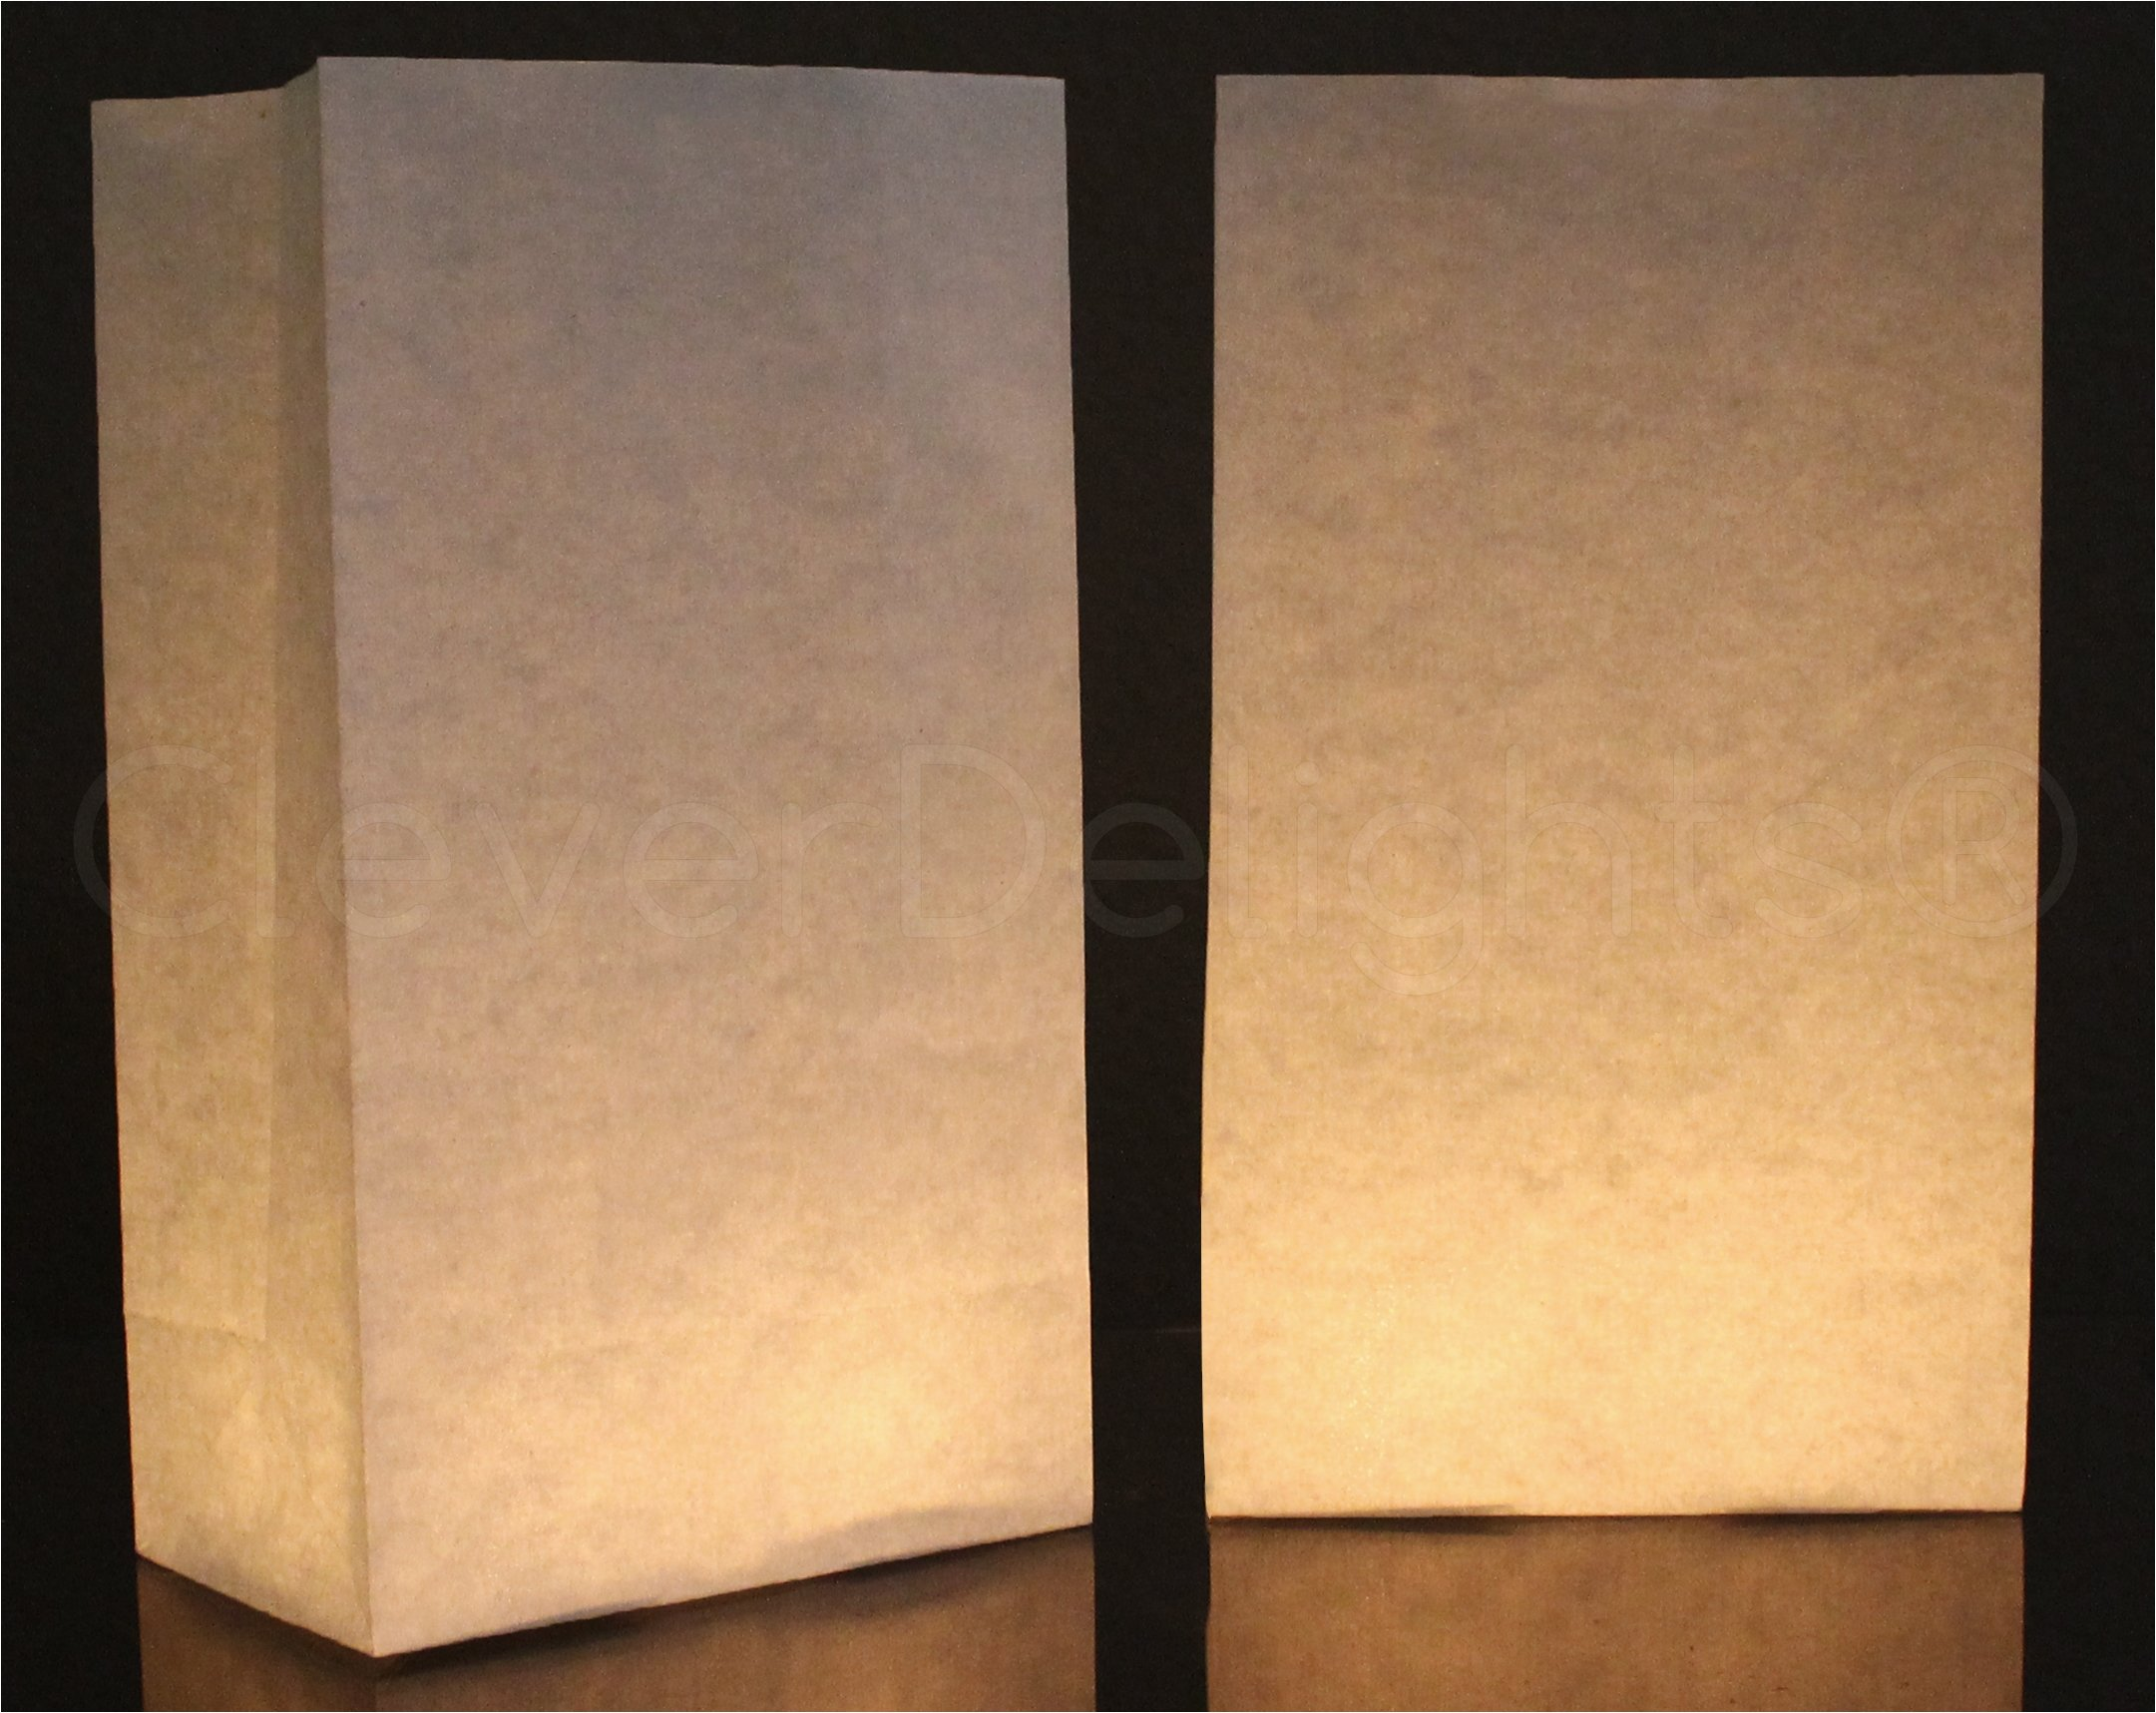 20 Pk - CleverDelights White Luminary Bags - Flame Resistant Paper - Wedding Christmas Holiday Luminaria